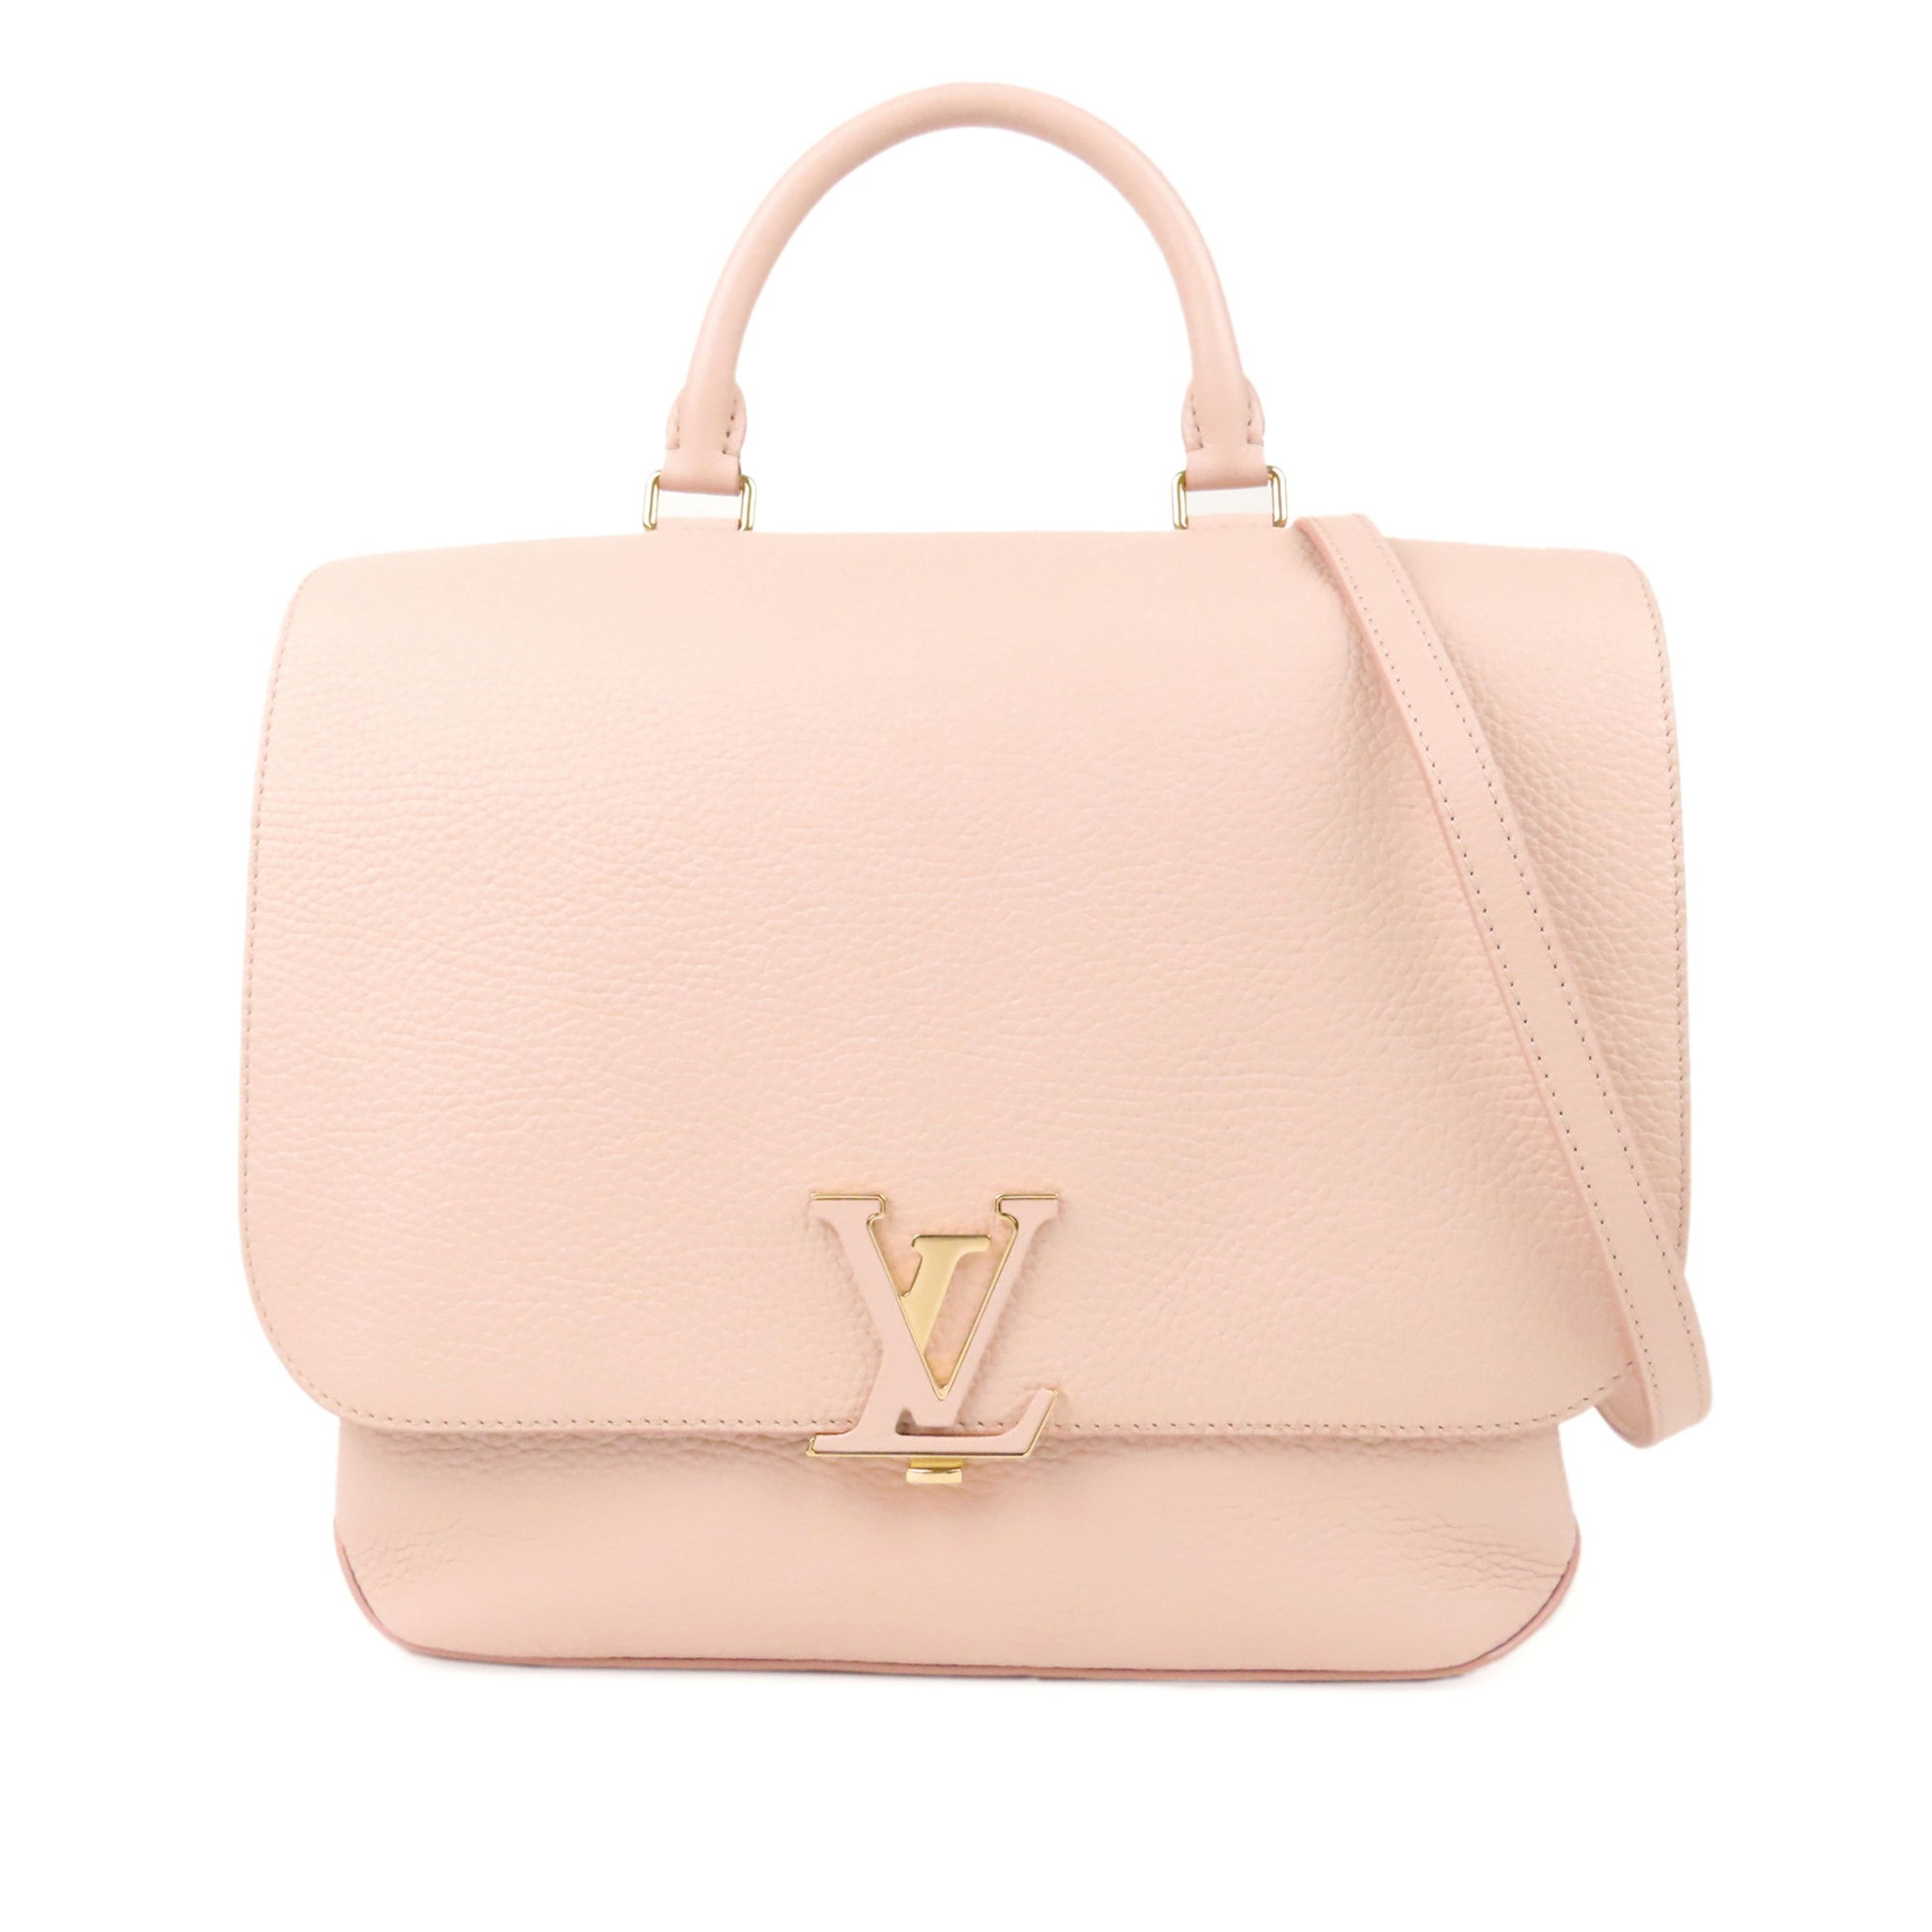 Sacoche LOUIS VUITTON Pink